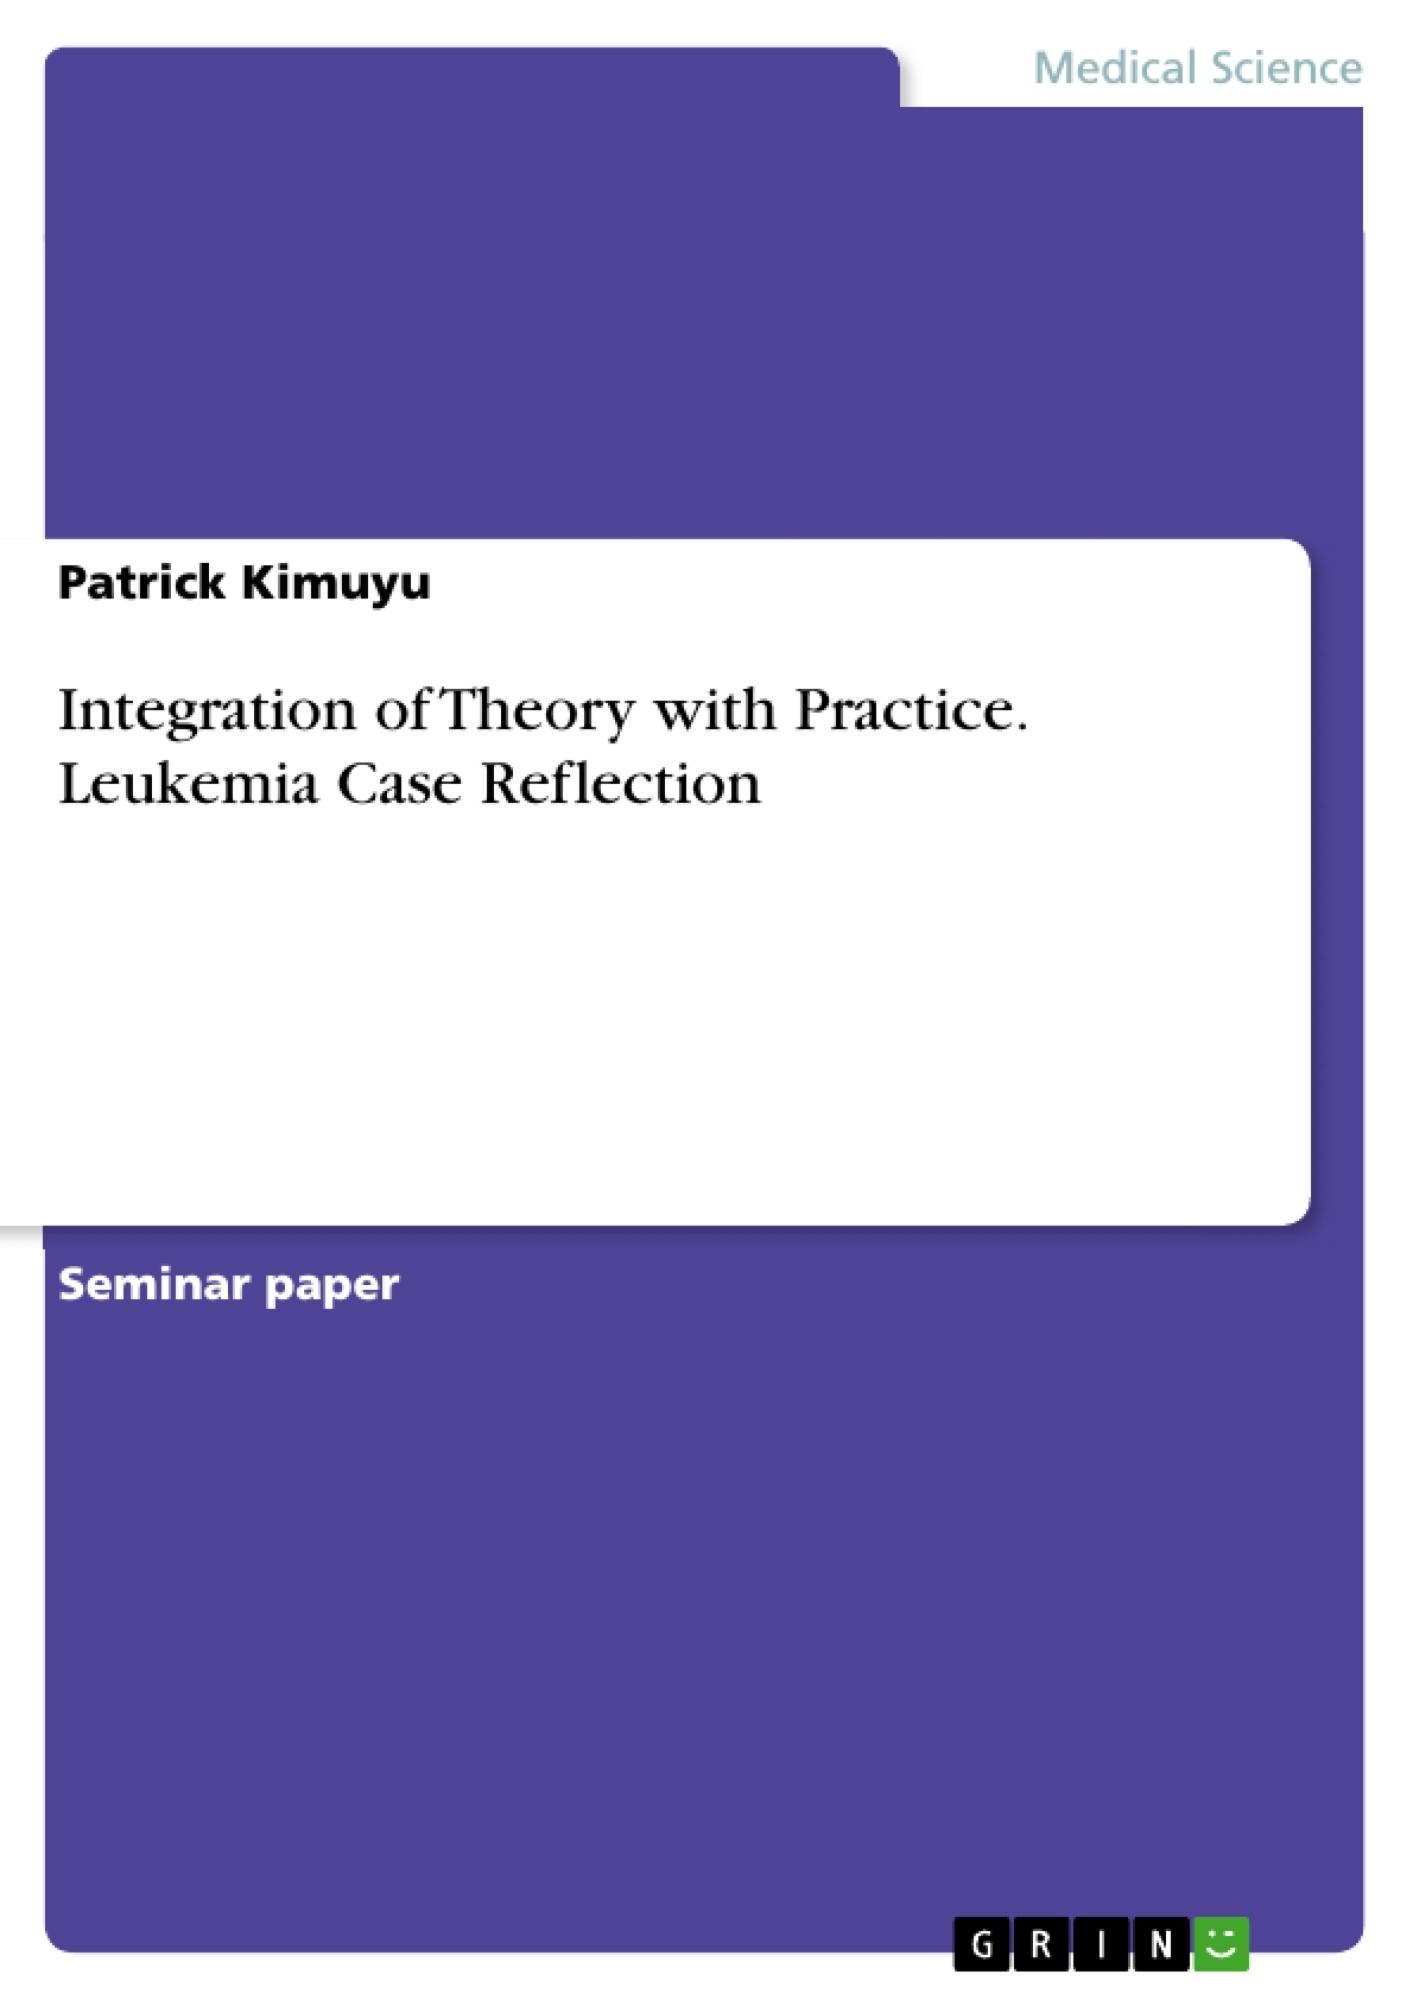 Title: Integration of Theory with Practice. Leukemia Case Reflection